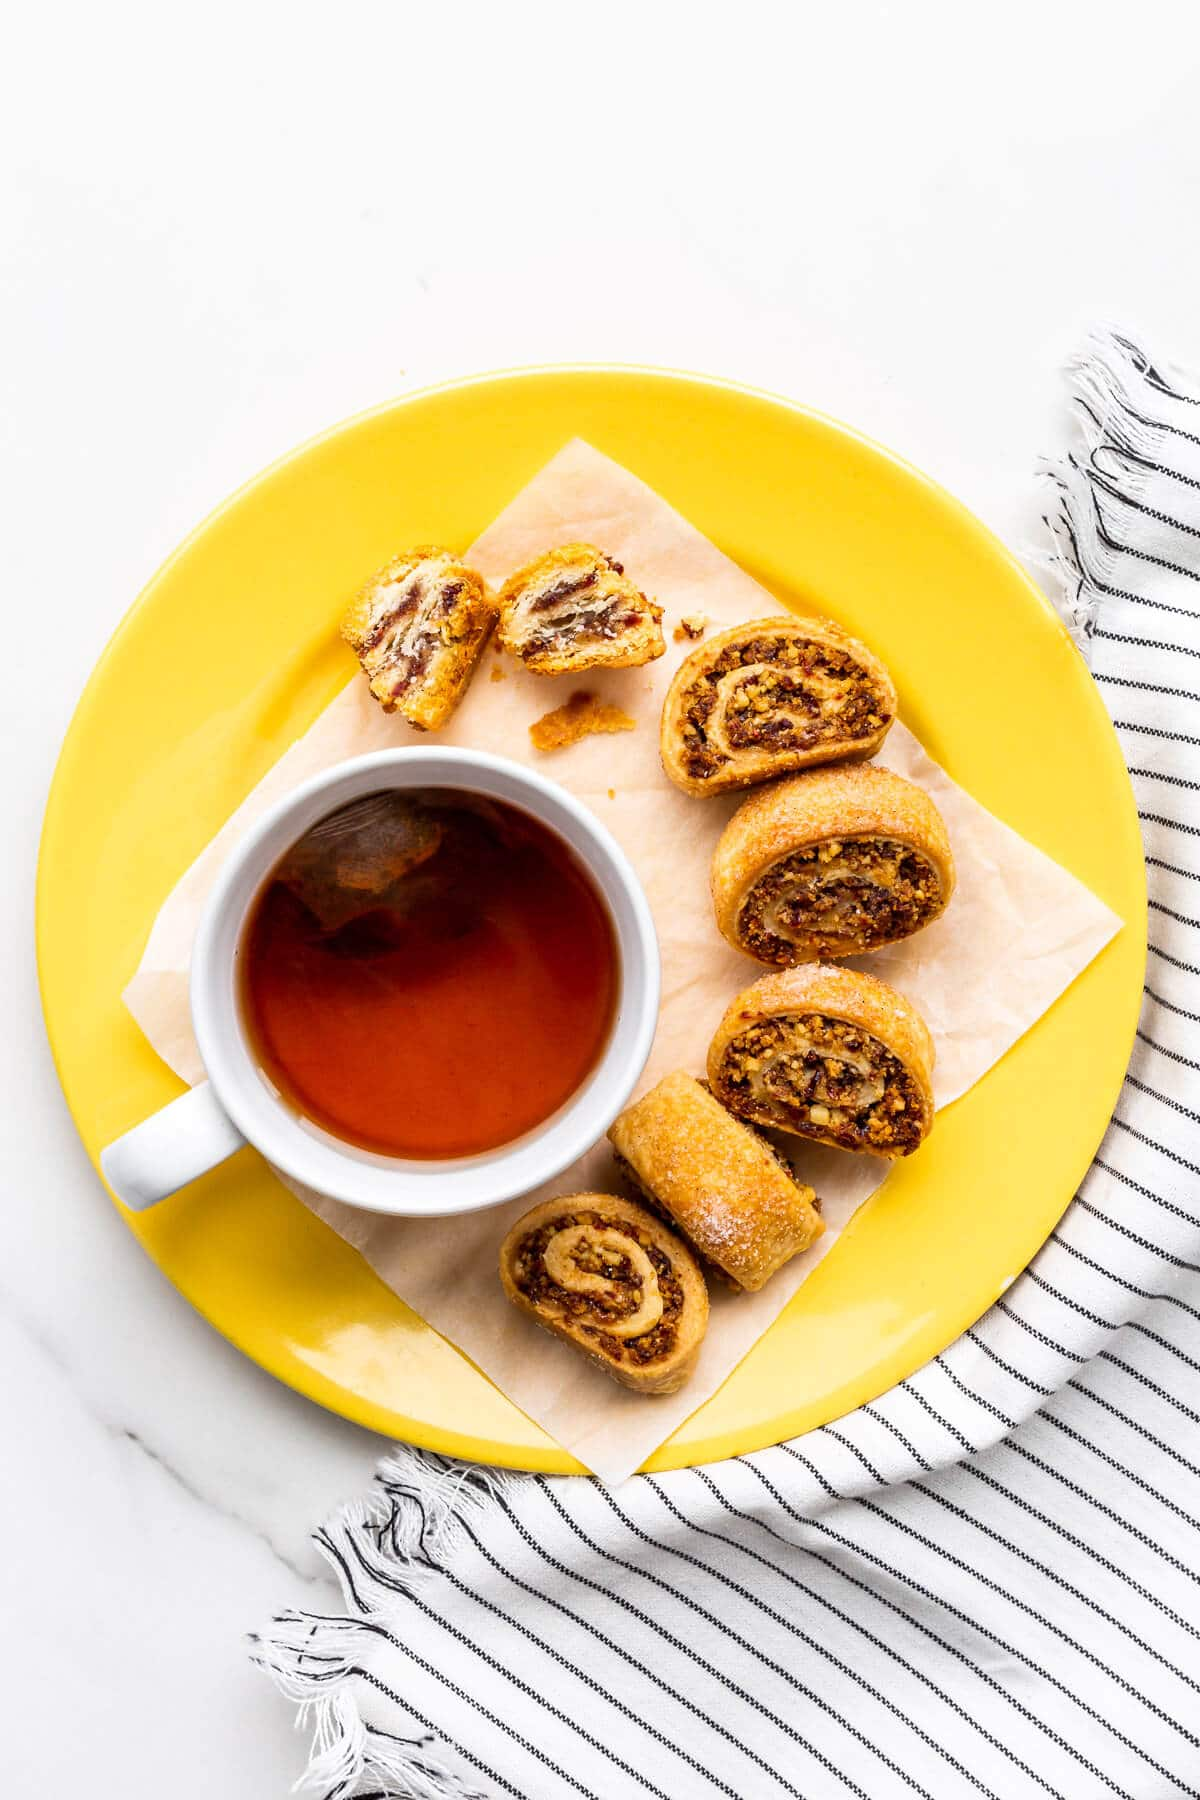 Rugelach cookies on a yellow plate with a cup of tea.